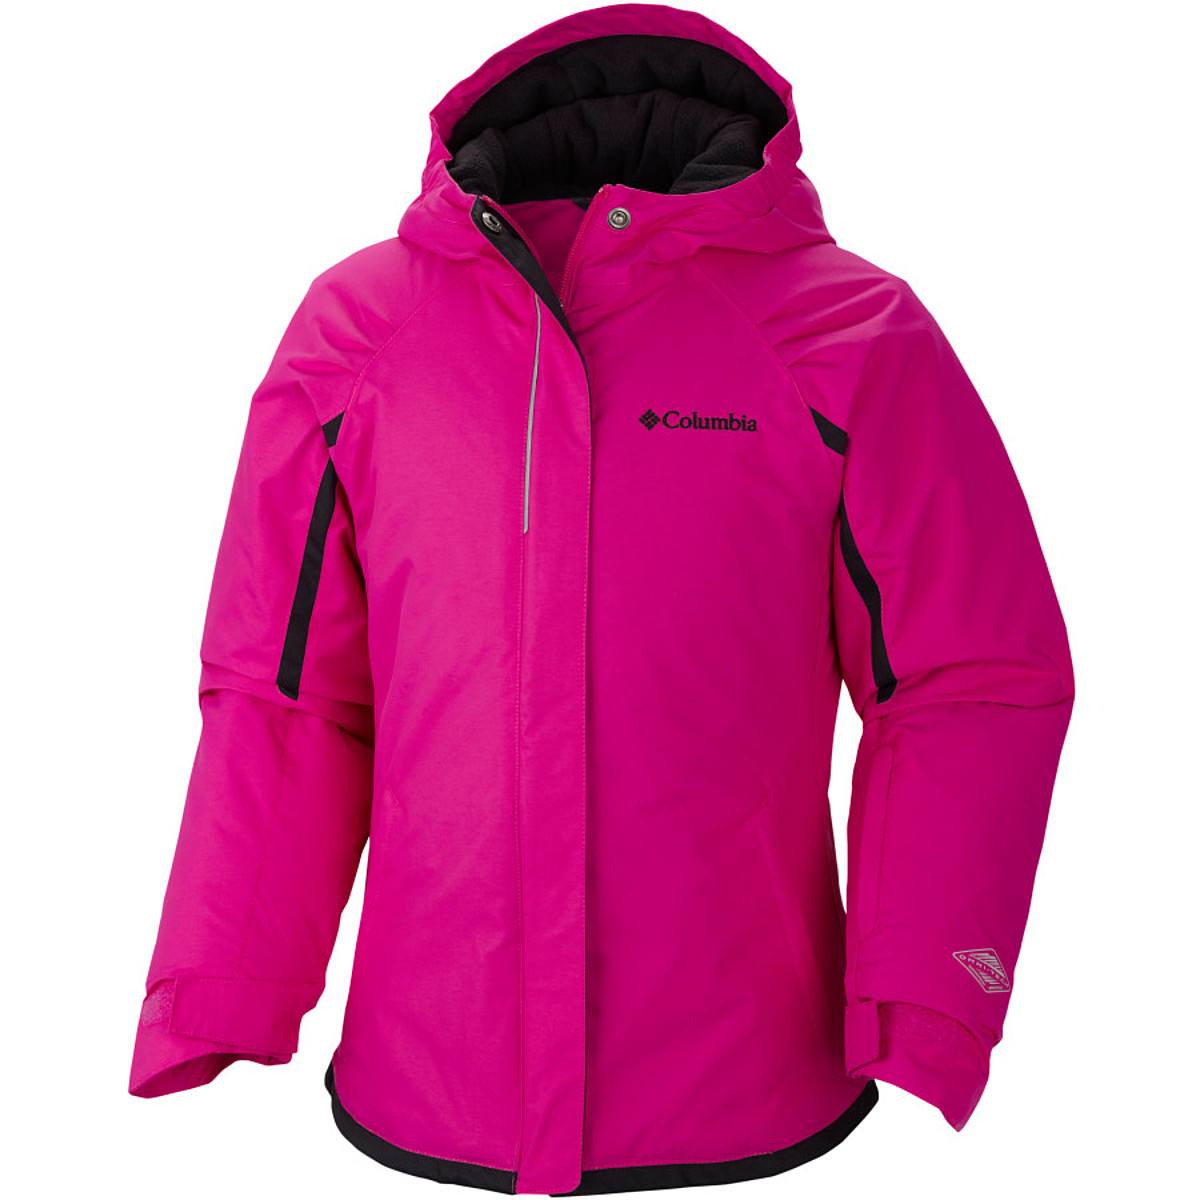 Columbia Alpine Action Jacket